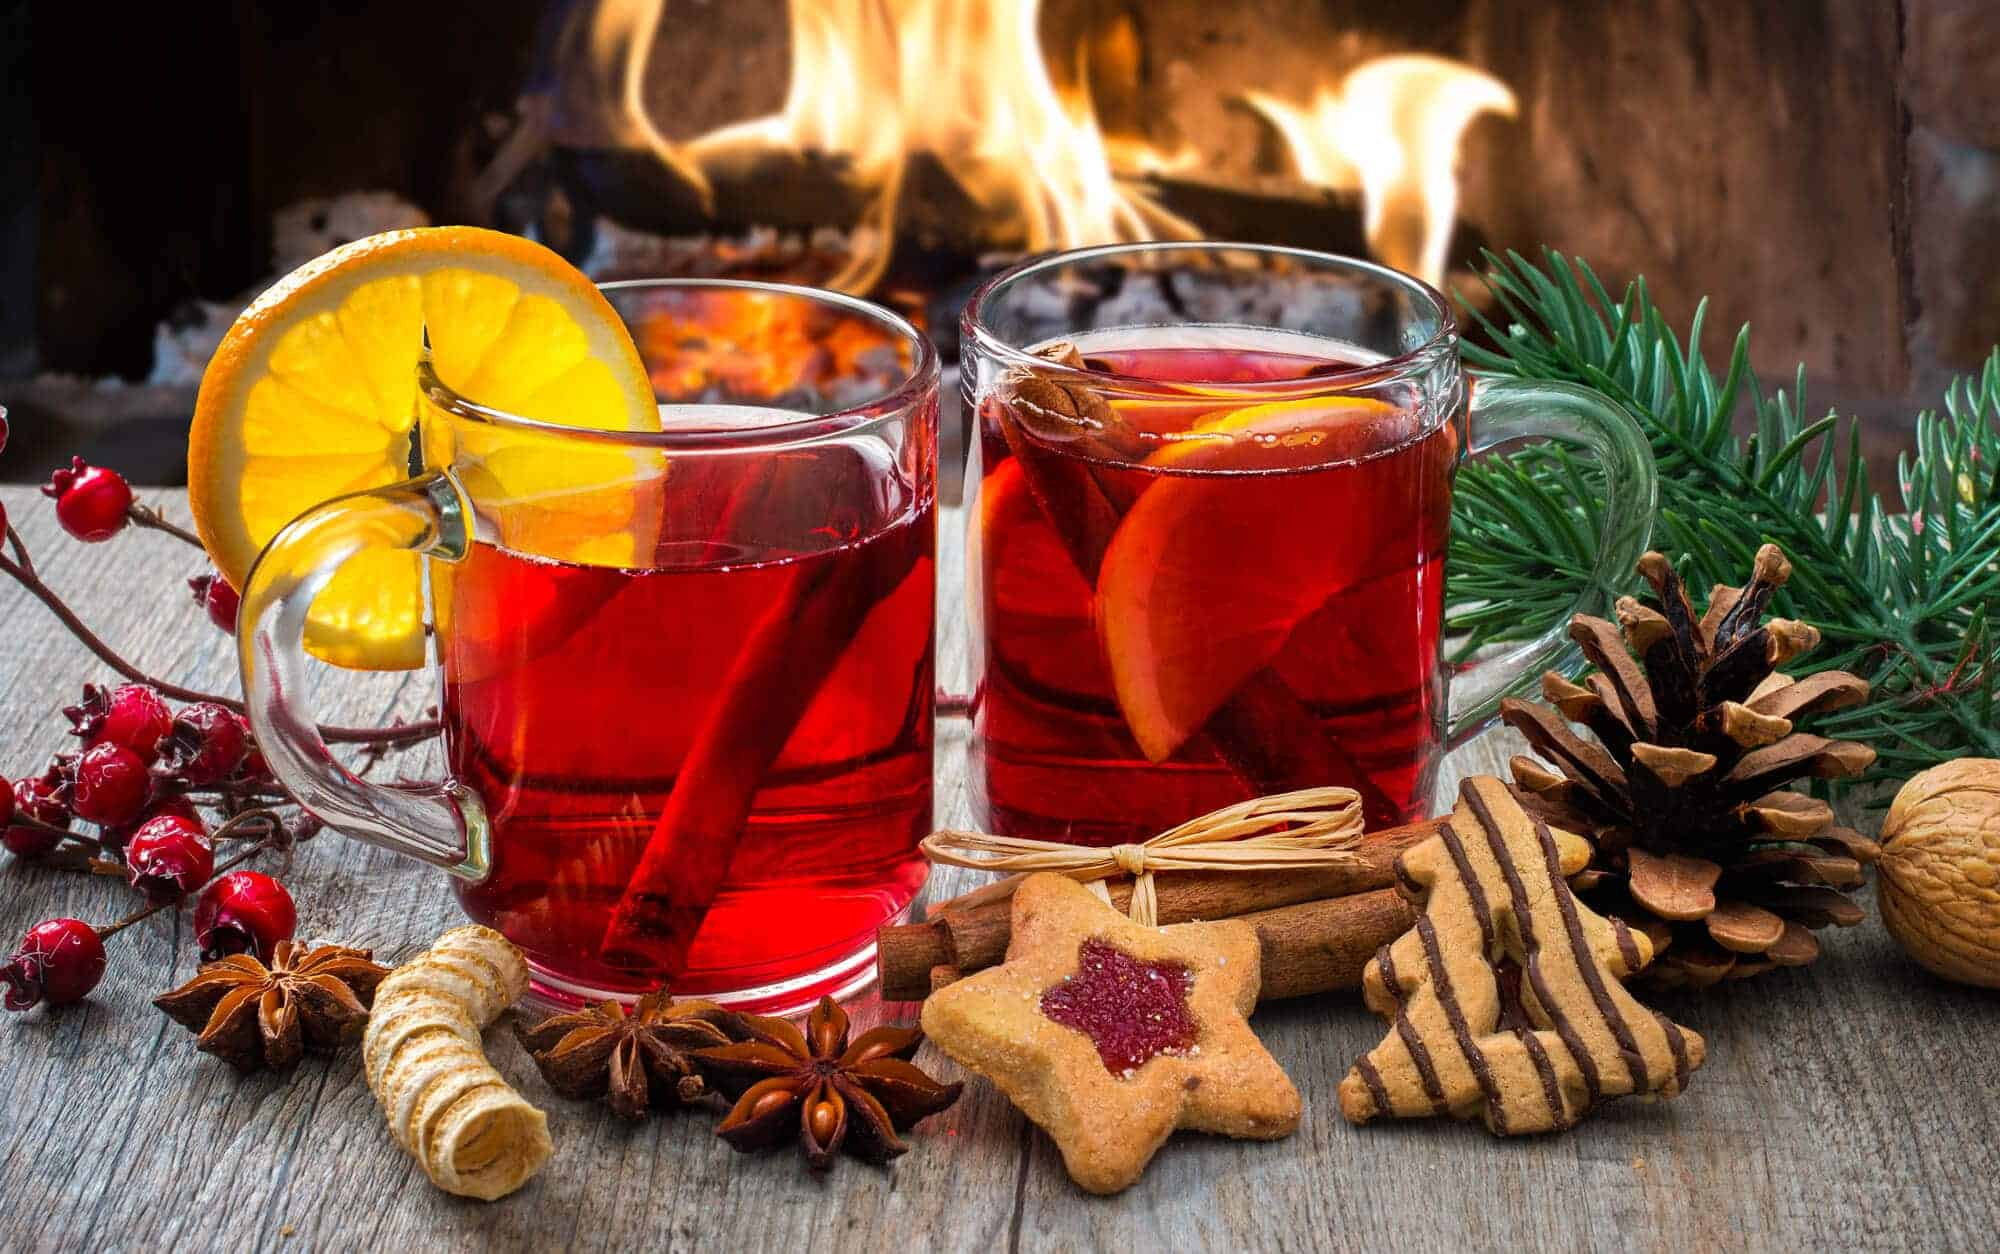 Kinderpunsch (German Non-Alcoholic Christmas Punch) - The Daring Gourmet